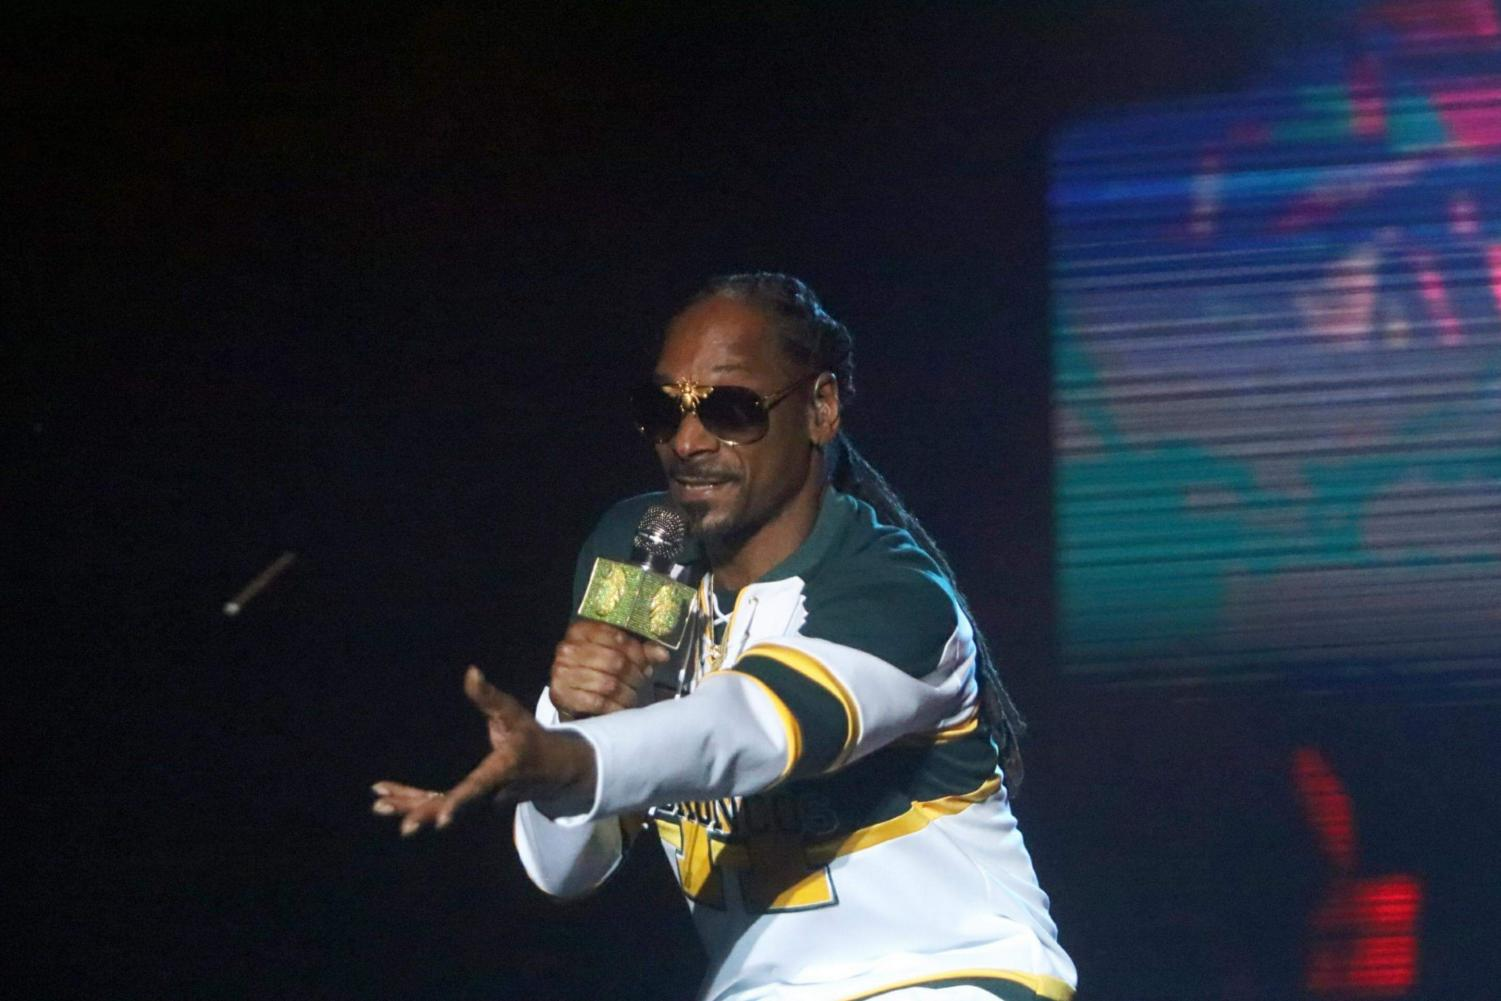 Rapper Snoop Dogg throws a blunt to members of the crowd as he headlines on the Yosemite stage on day two of Grizzly Fest, Friday, May 18.